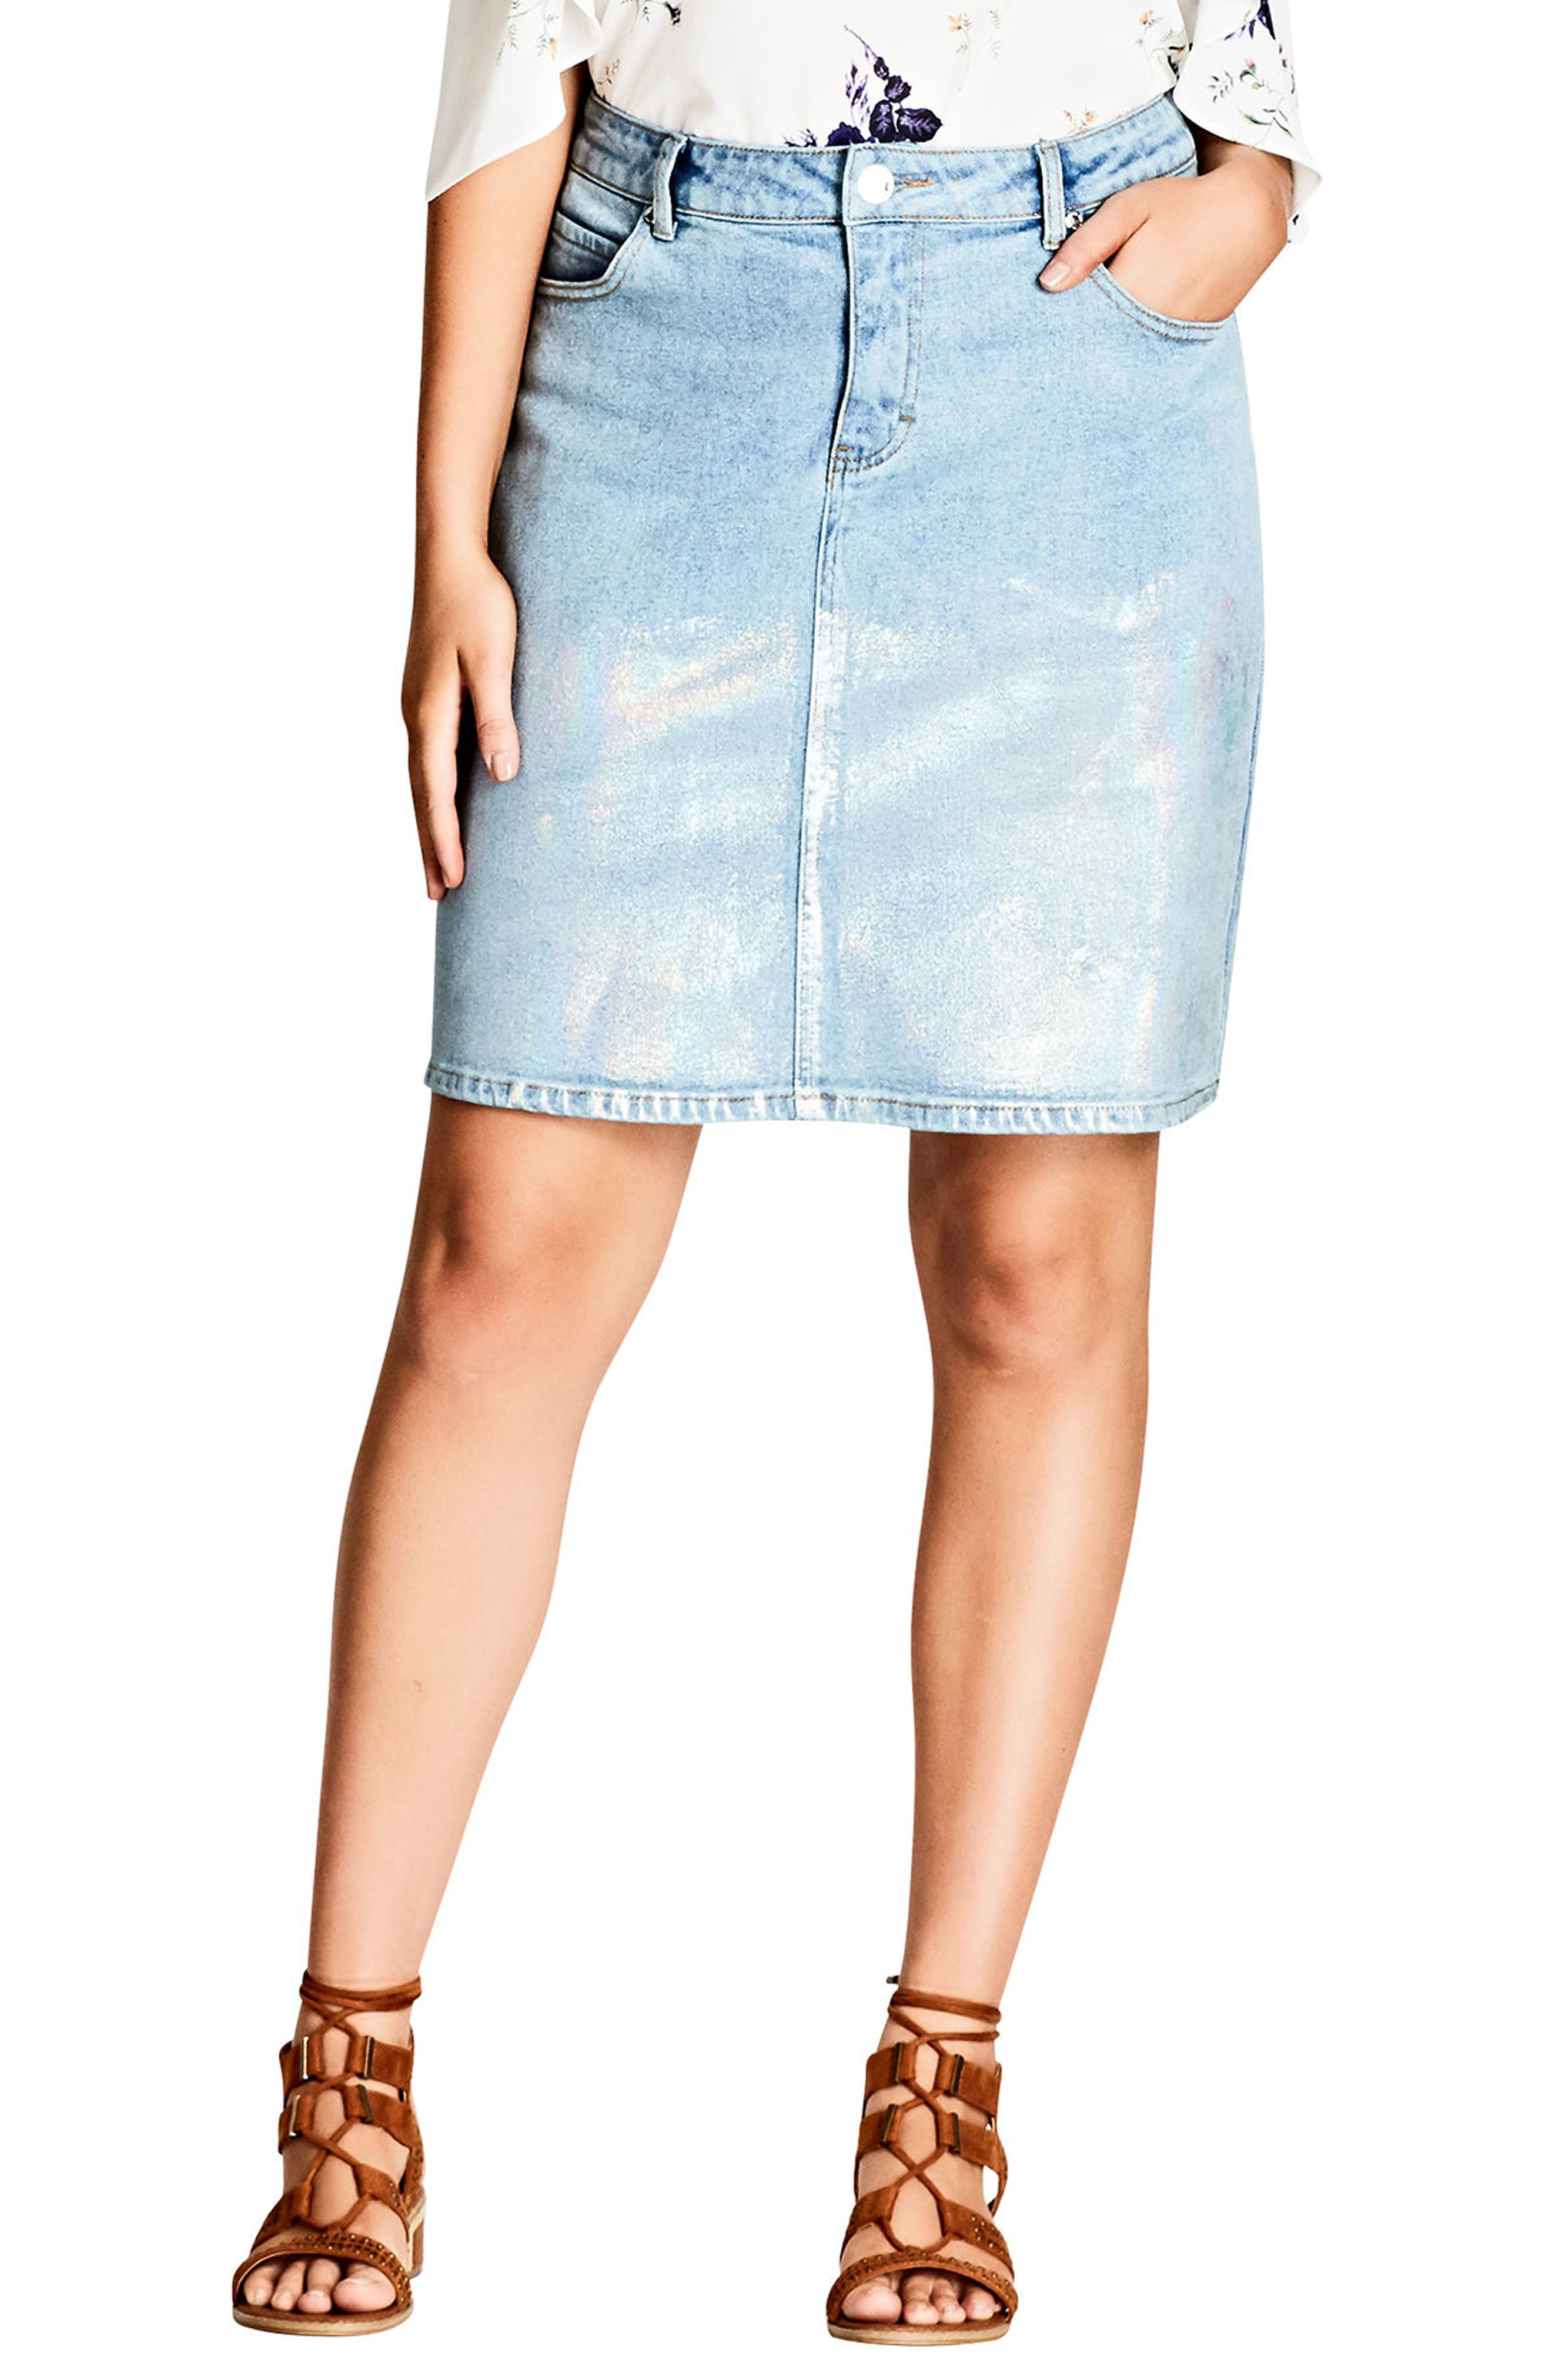 CITY CHIC Mirror Denim Skirt